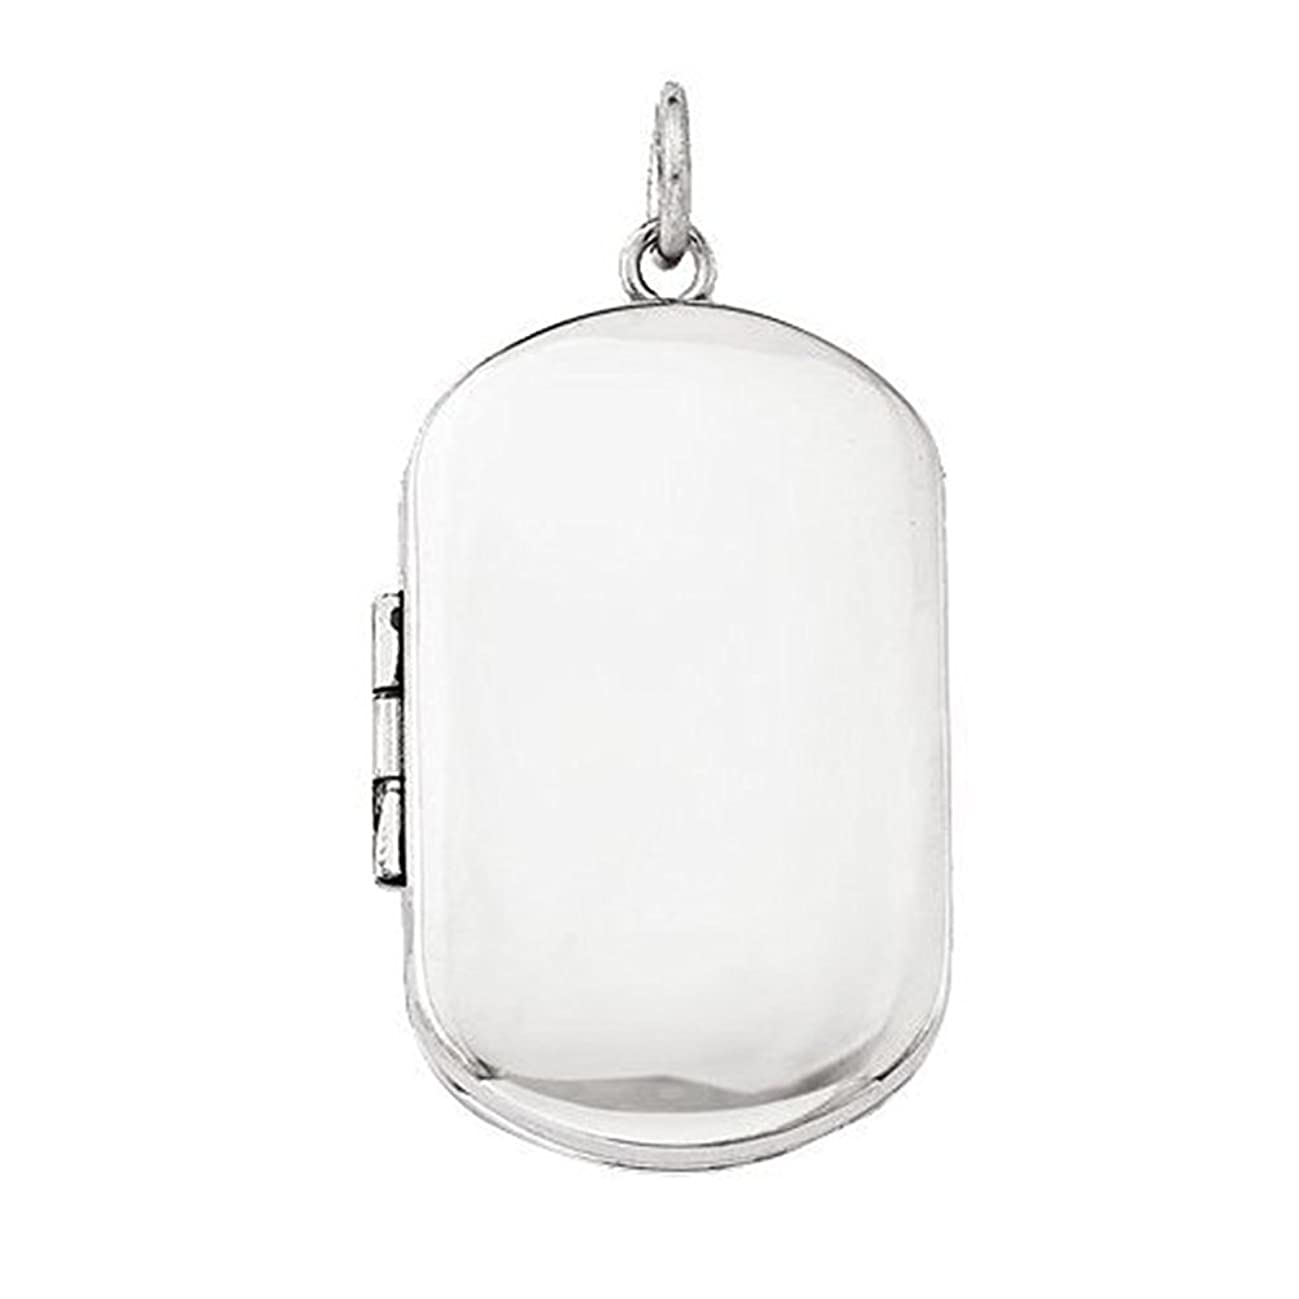 PicturesOnGold.com Sterling Silver Dog Tag Locket - 1 Inch X 1-1/4 Inch in Sterling Silver